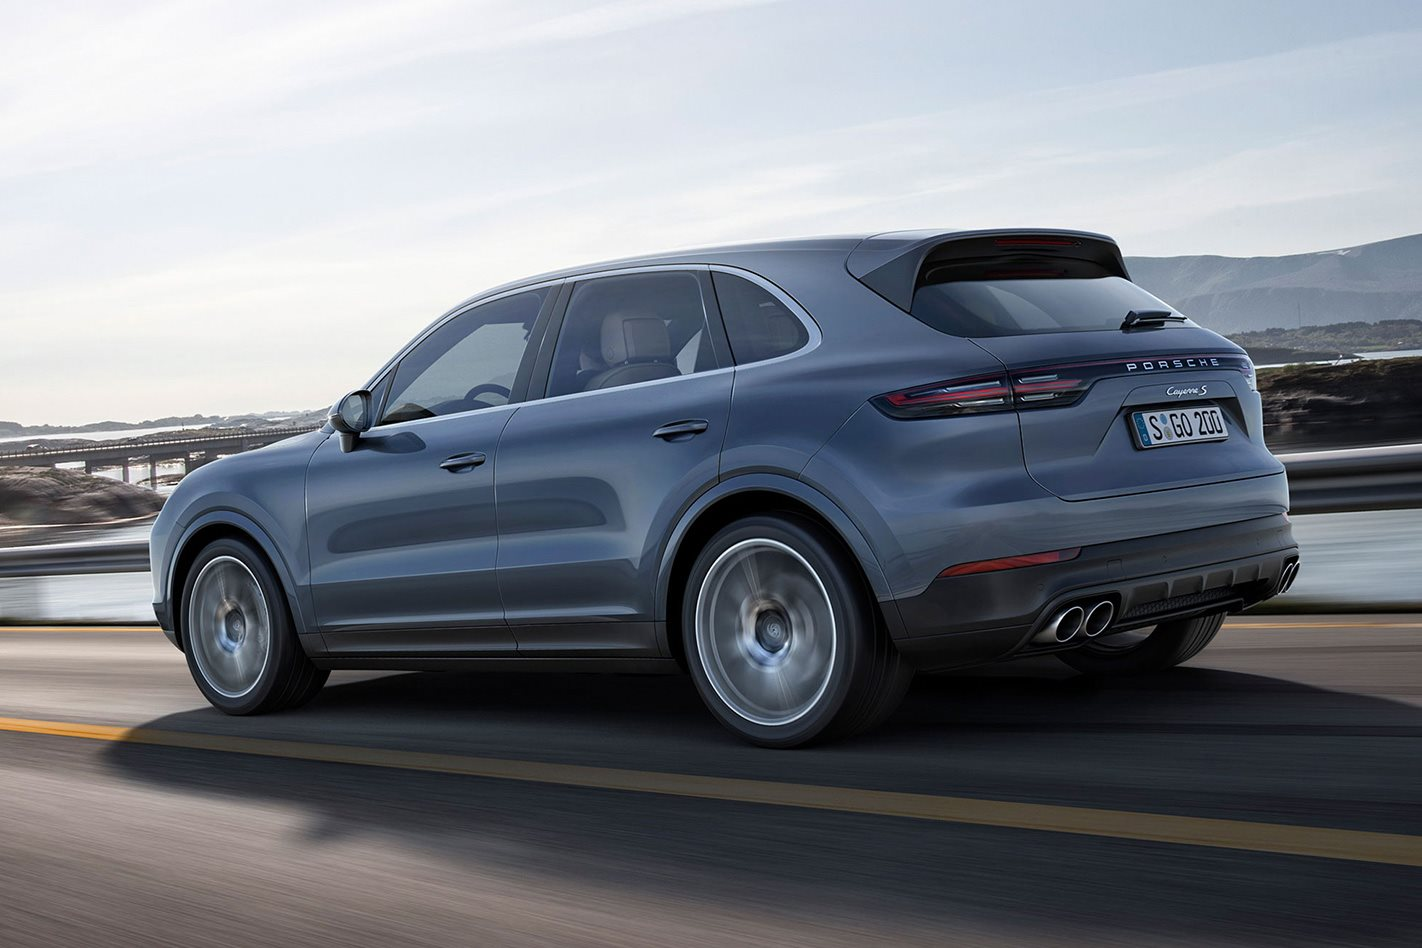 2018 porsche suv. beautiful suv 2018 porsche cayenne unveiled motor rear dekarlovofo  choice image to suv